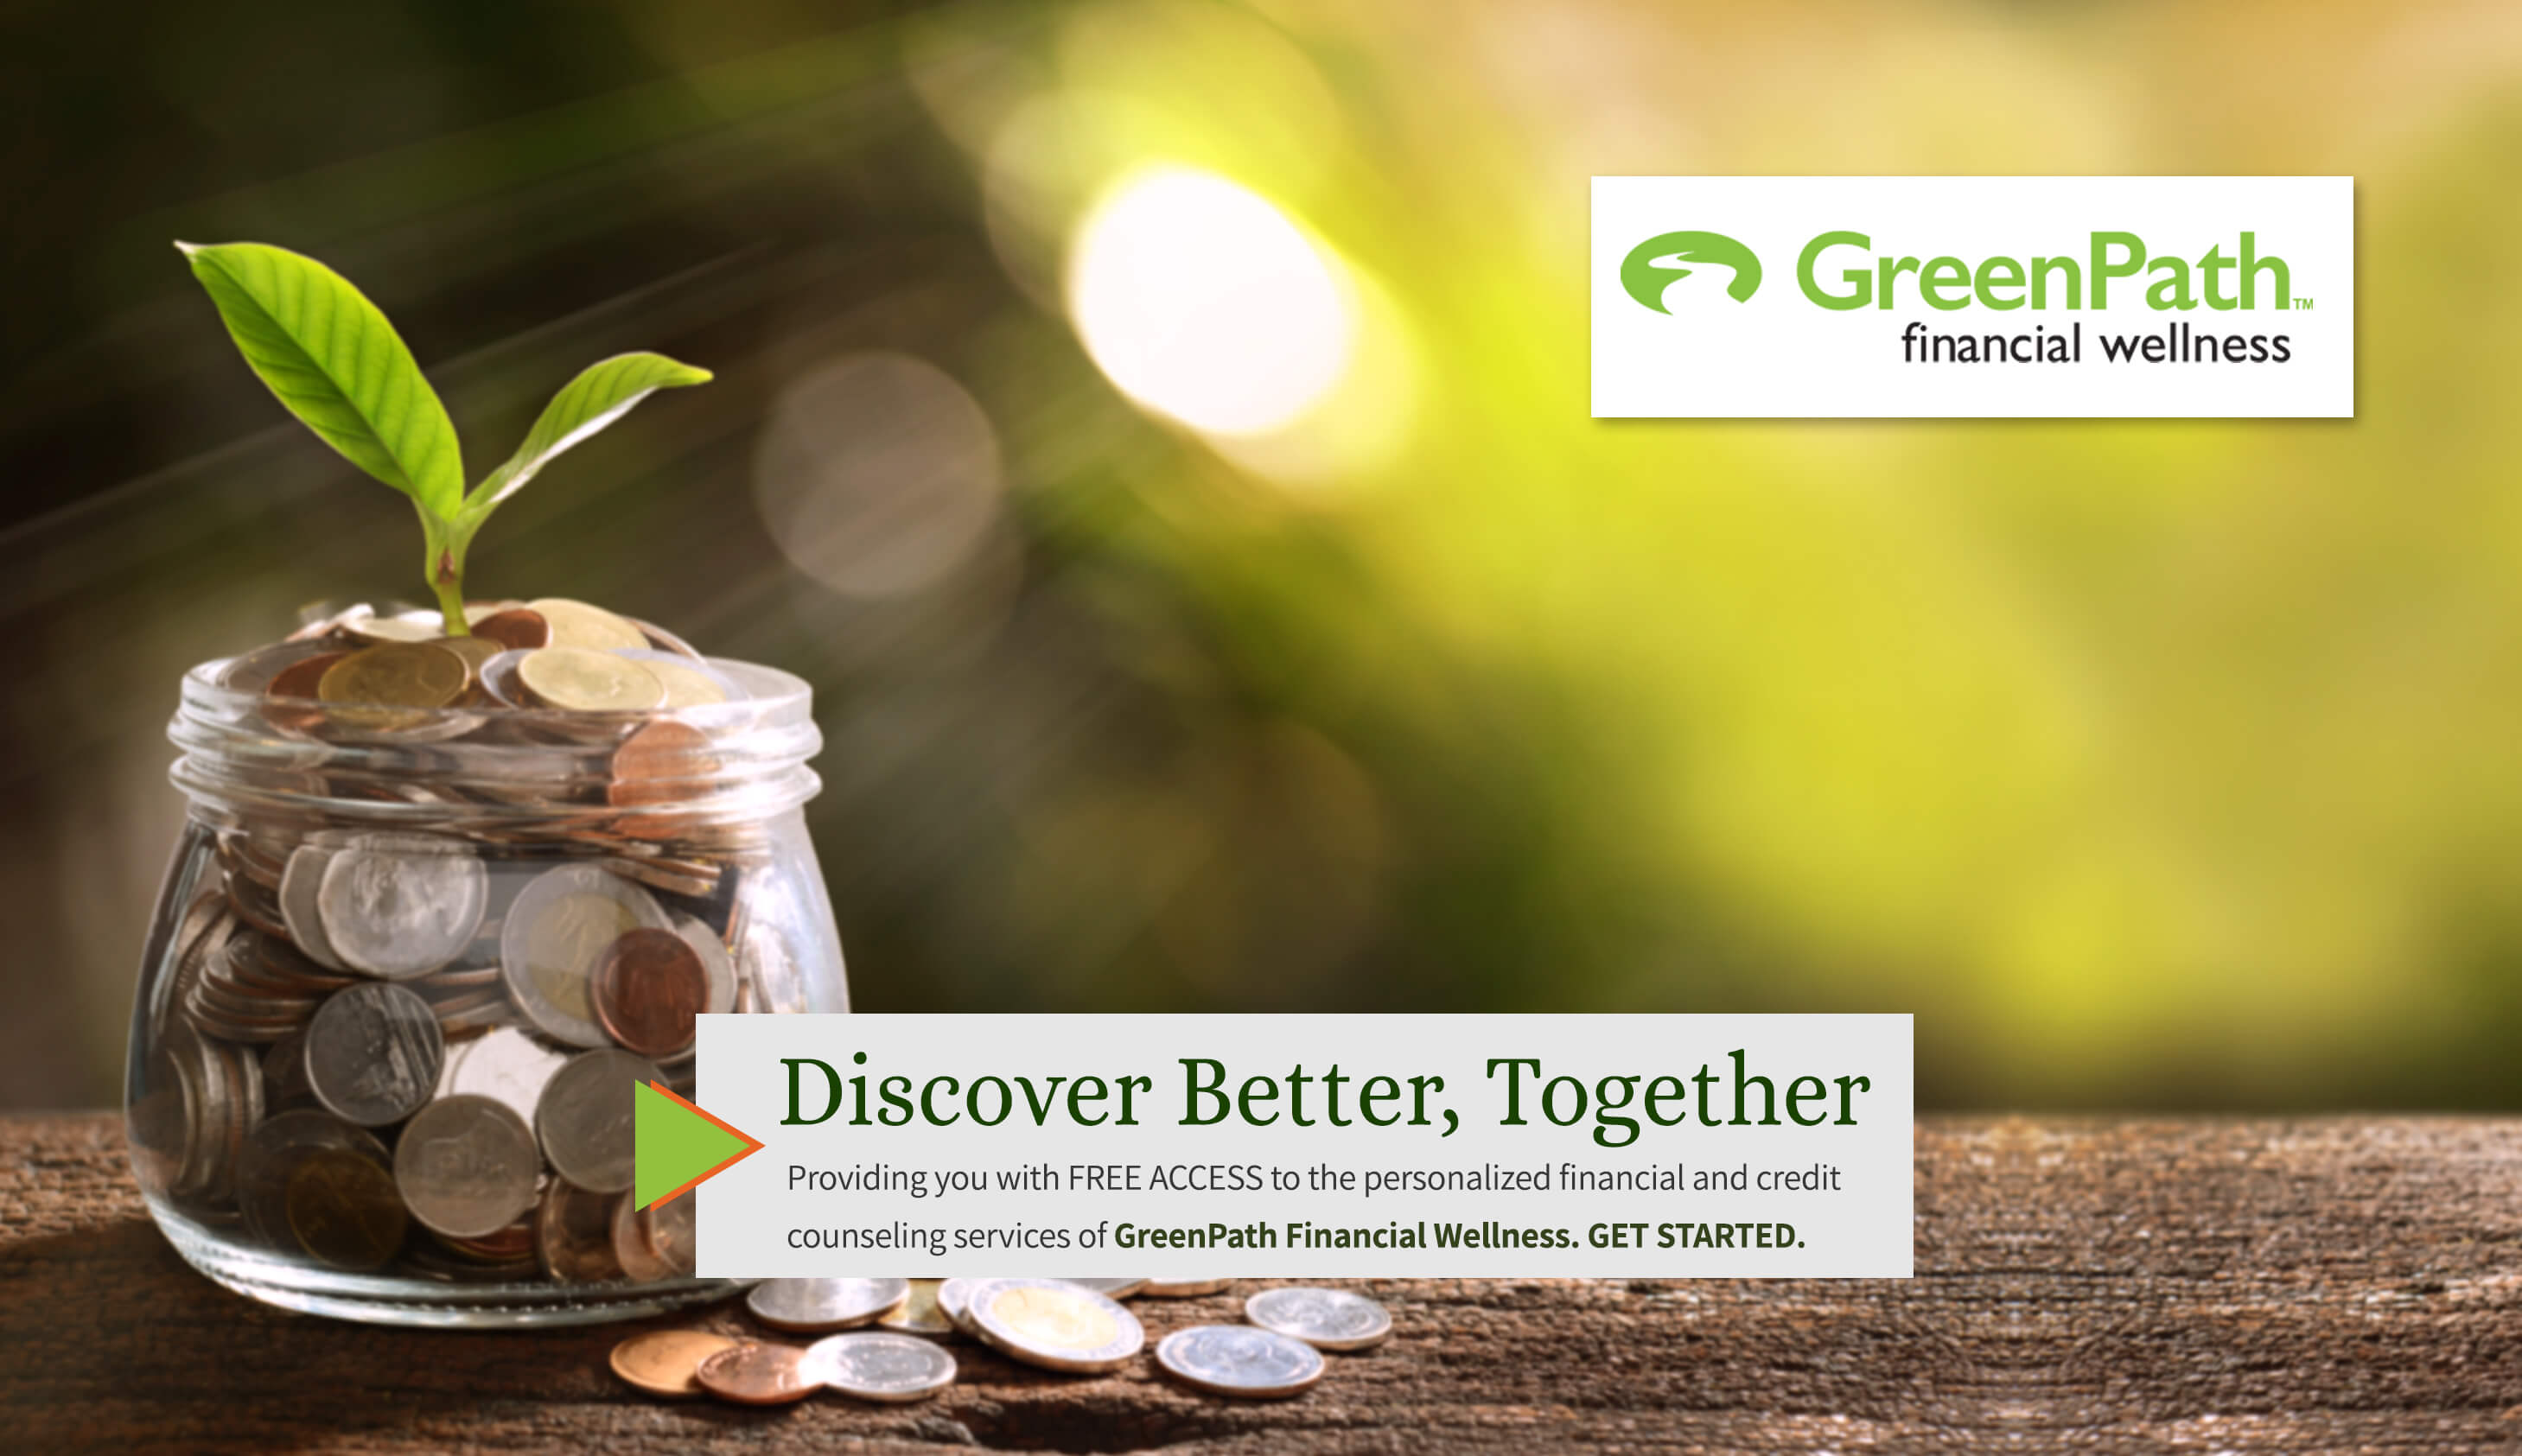 Greenpath Financial Wellness. Discover Better, Together. Providing you with free access to the personalized financial and credit counseling services of GeenPath Financial Wellness. Get Started